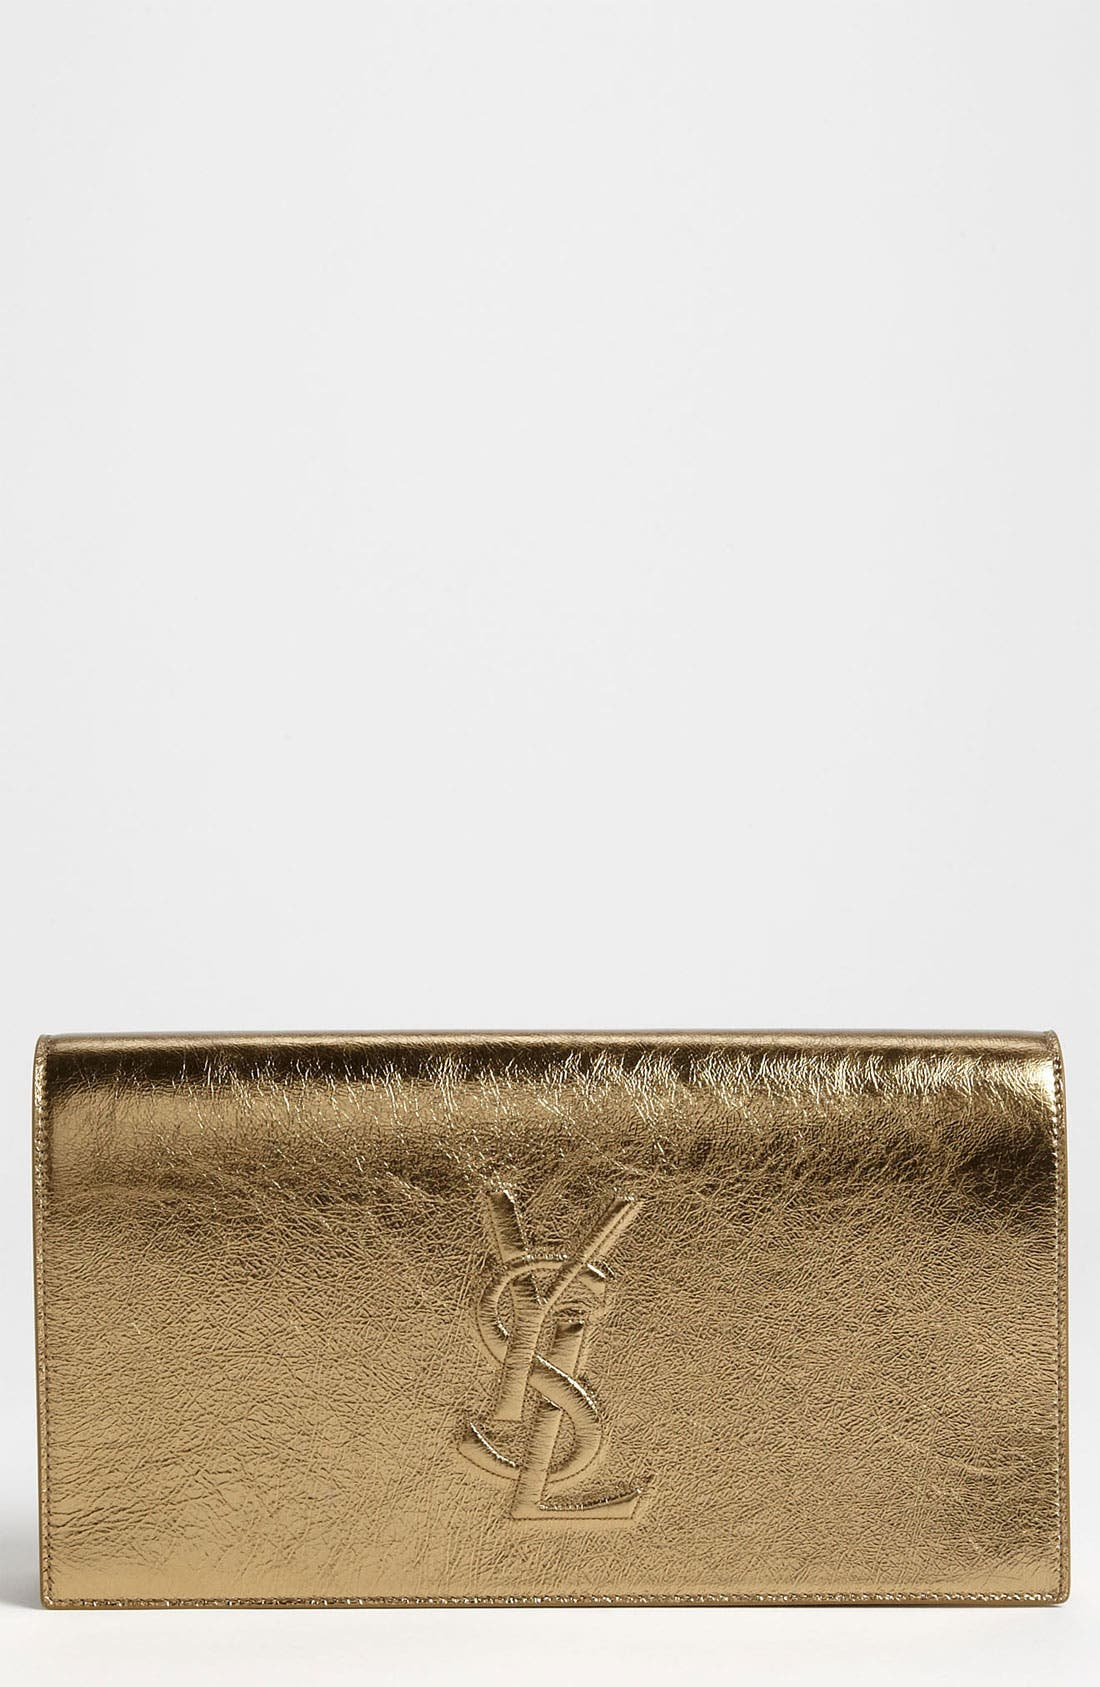 Alternate Image 1 Selected - Saint Laurent 'Belle de Jour' Metallic Leather Clutch